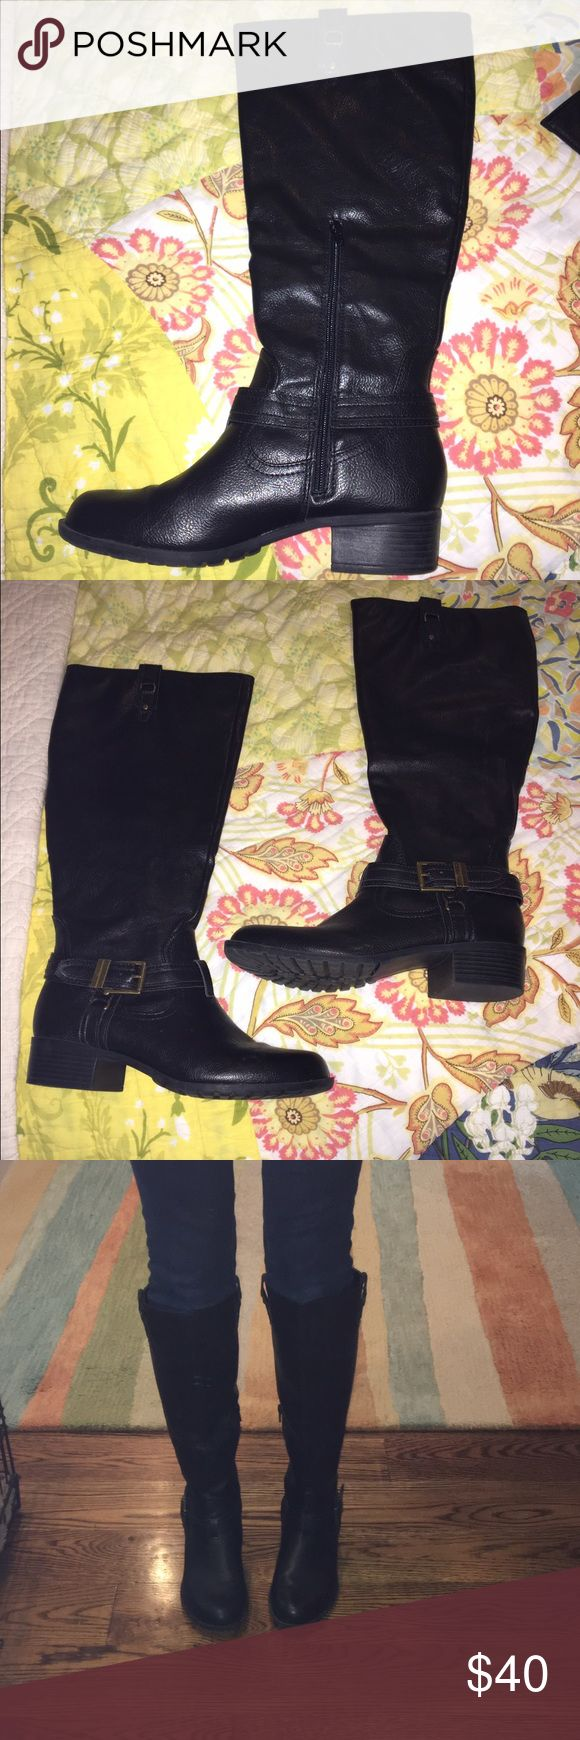 Michael Shannon Black leather knee high boots NEVER WORN!! Michael Shannon black knee high leather boots. Perfect condition. Comes with shoe box. M.P.S. Shoes Over the Knee Boots